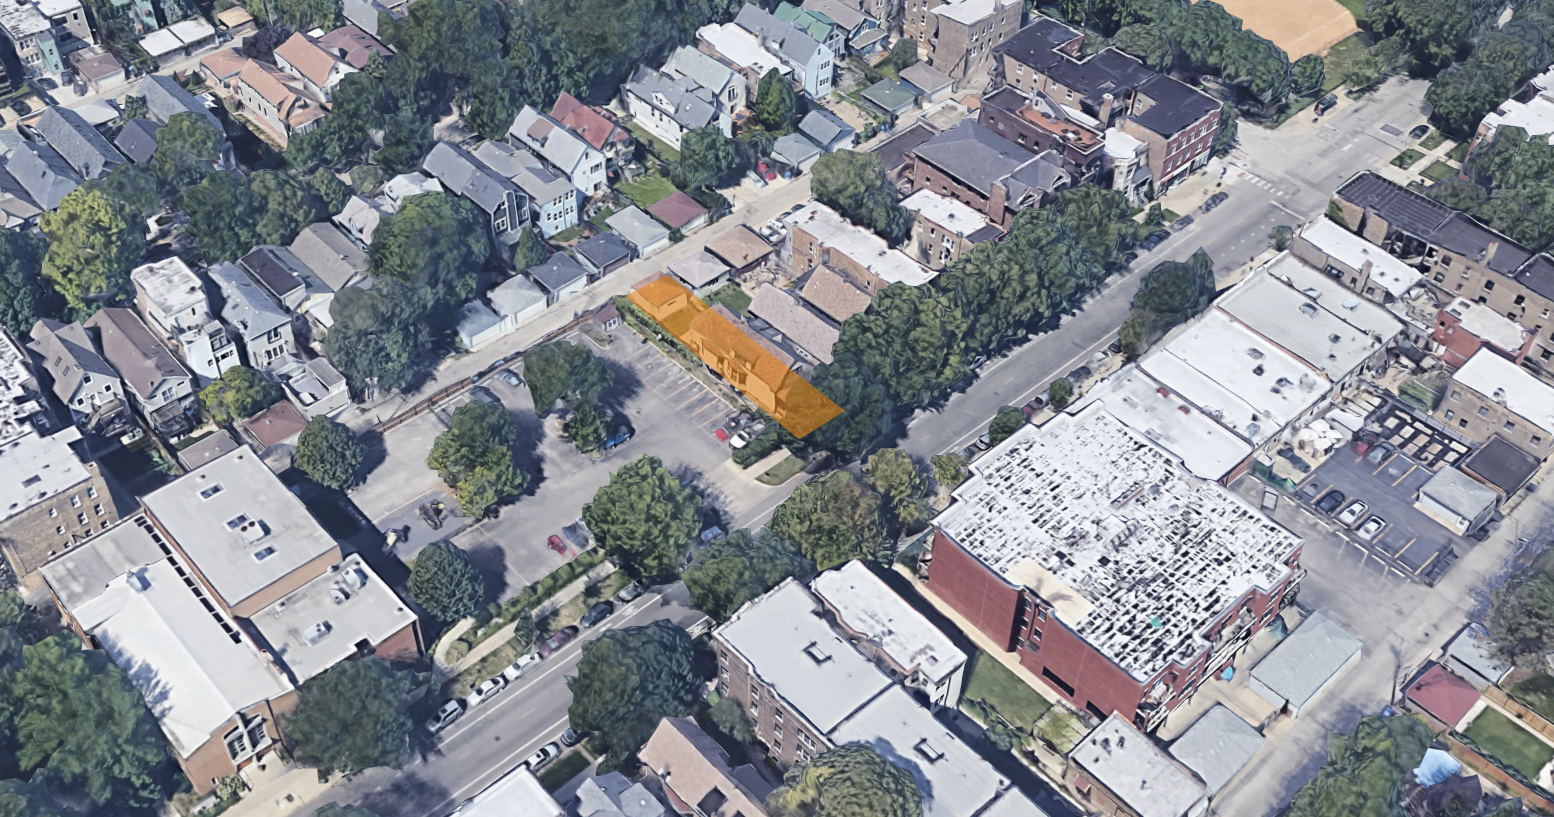 Aerial view of 4930 N Damen Avenue (in orange), facing northwest